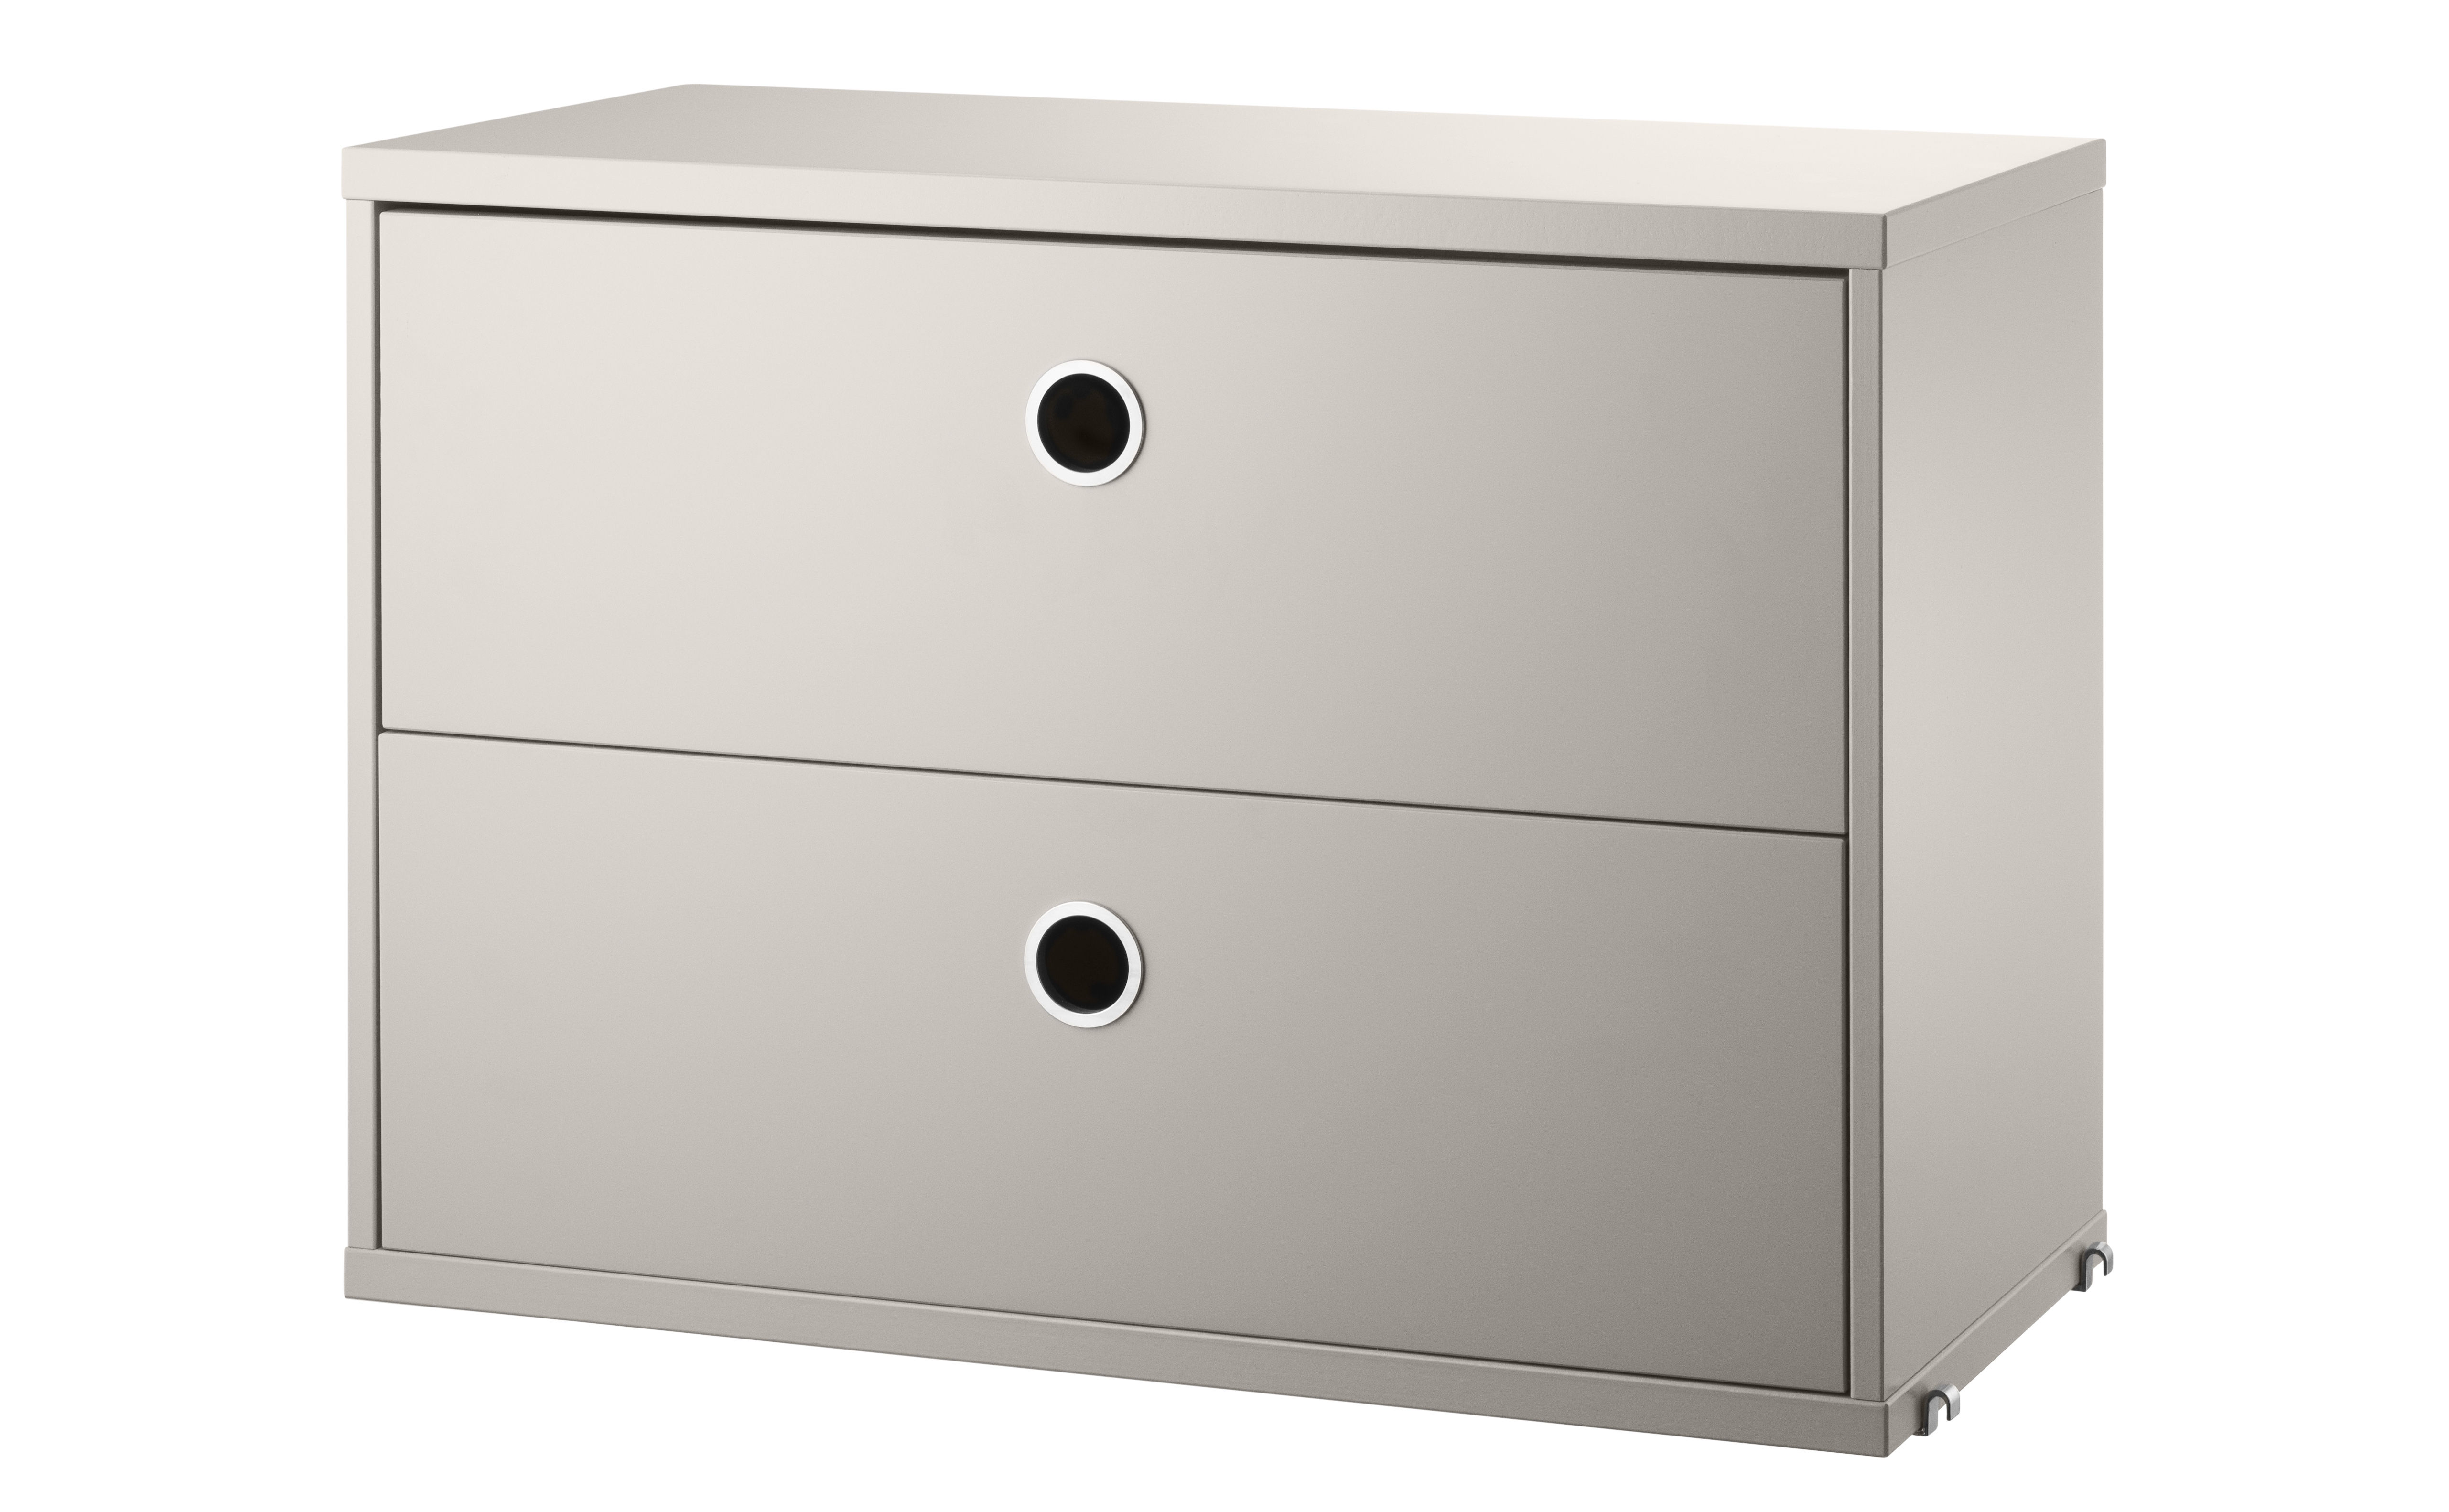 Furniture - Bookcases & Bookshelves - String System Crate - / 2 drawers - L 58 x D 30 cm by String Furniture - Beige - Lacquered MDF